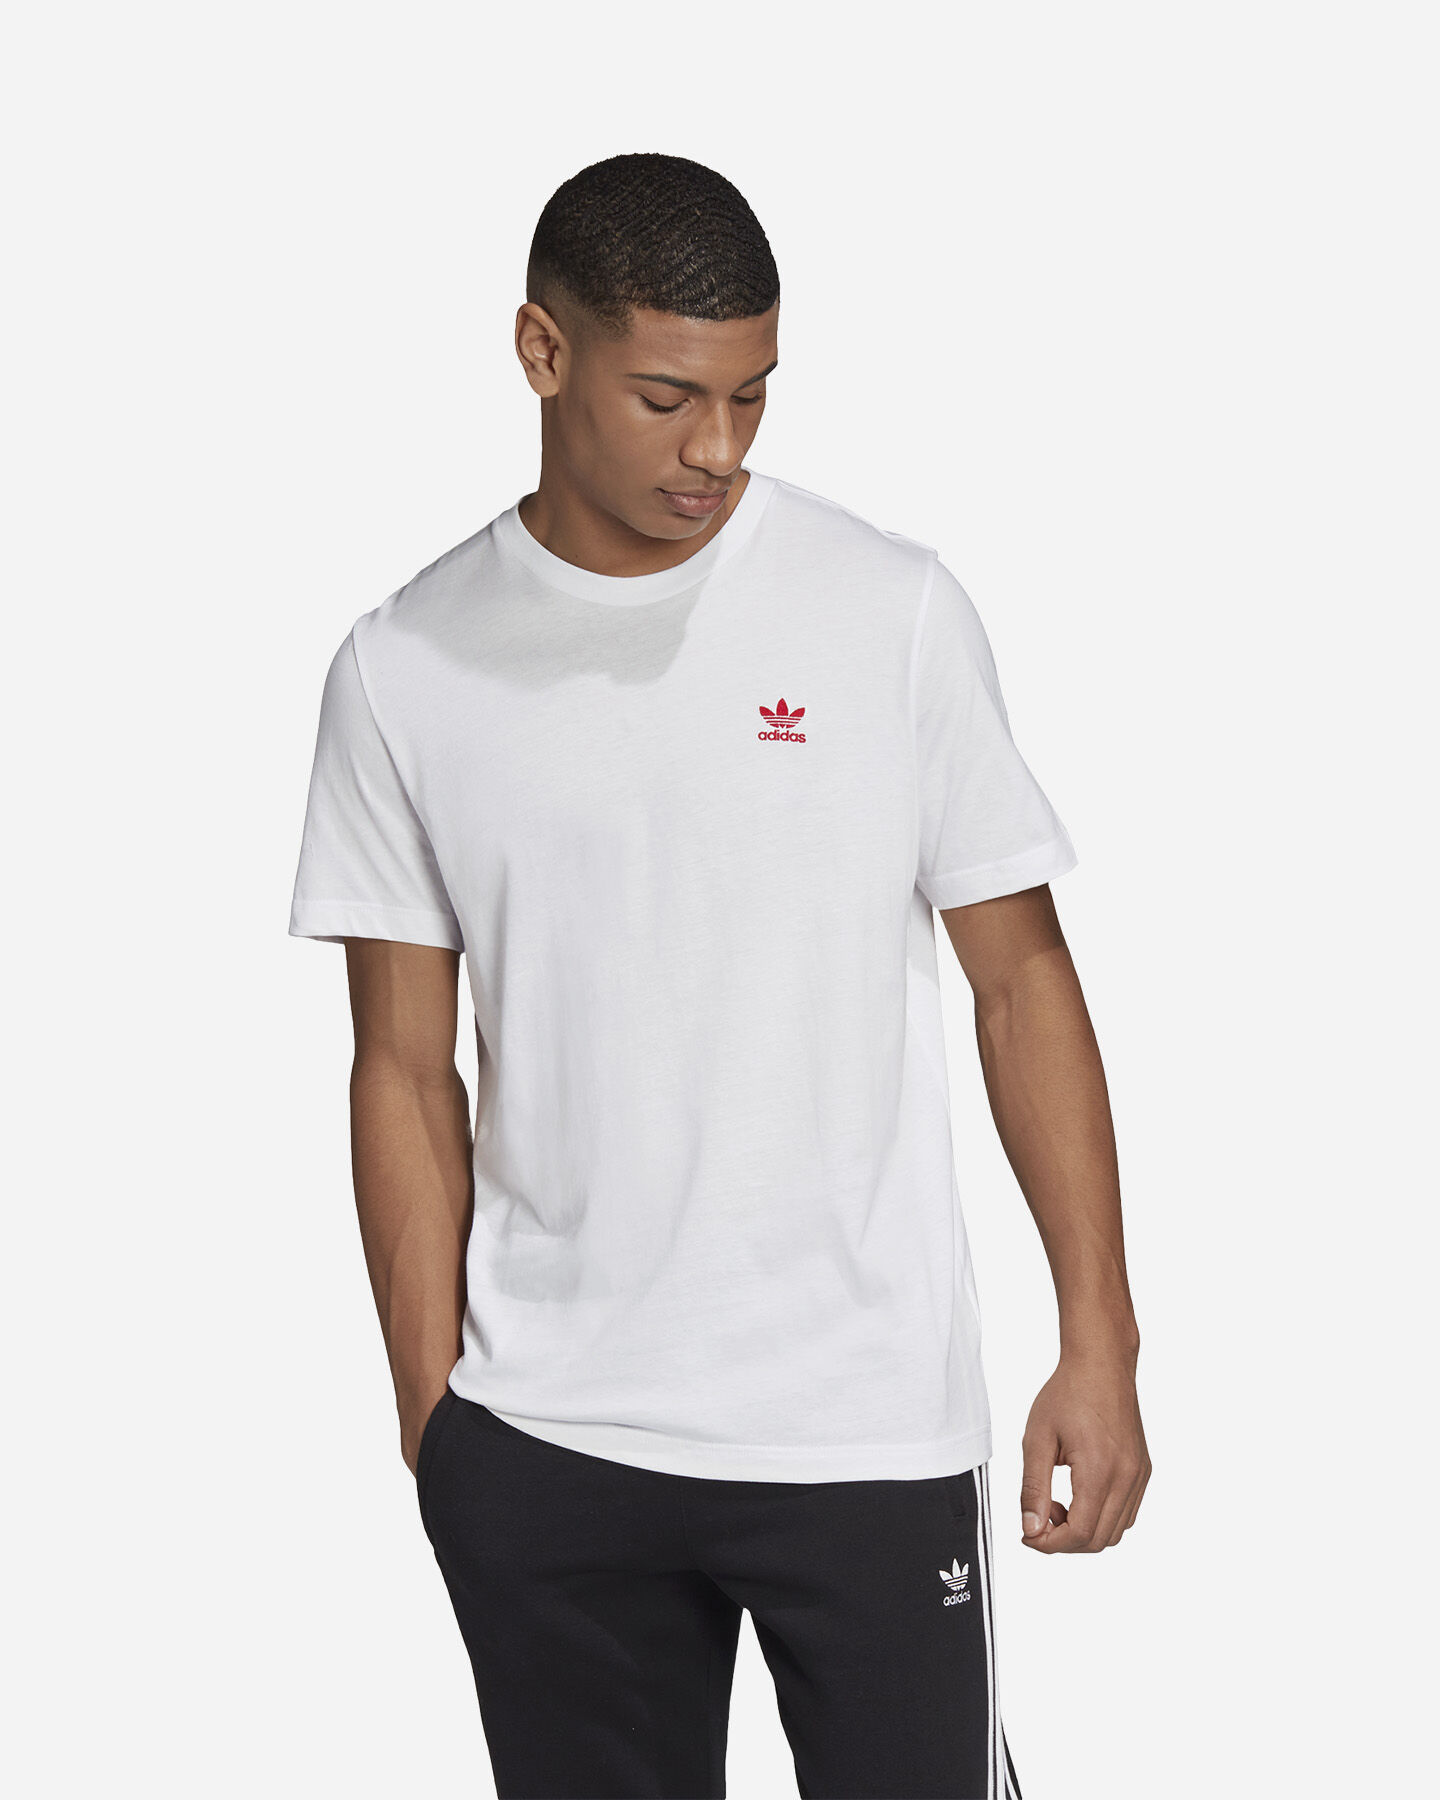 T-Shirt ADIDAS SMALL LOGO M S5210267 scatto 2